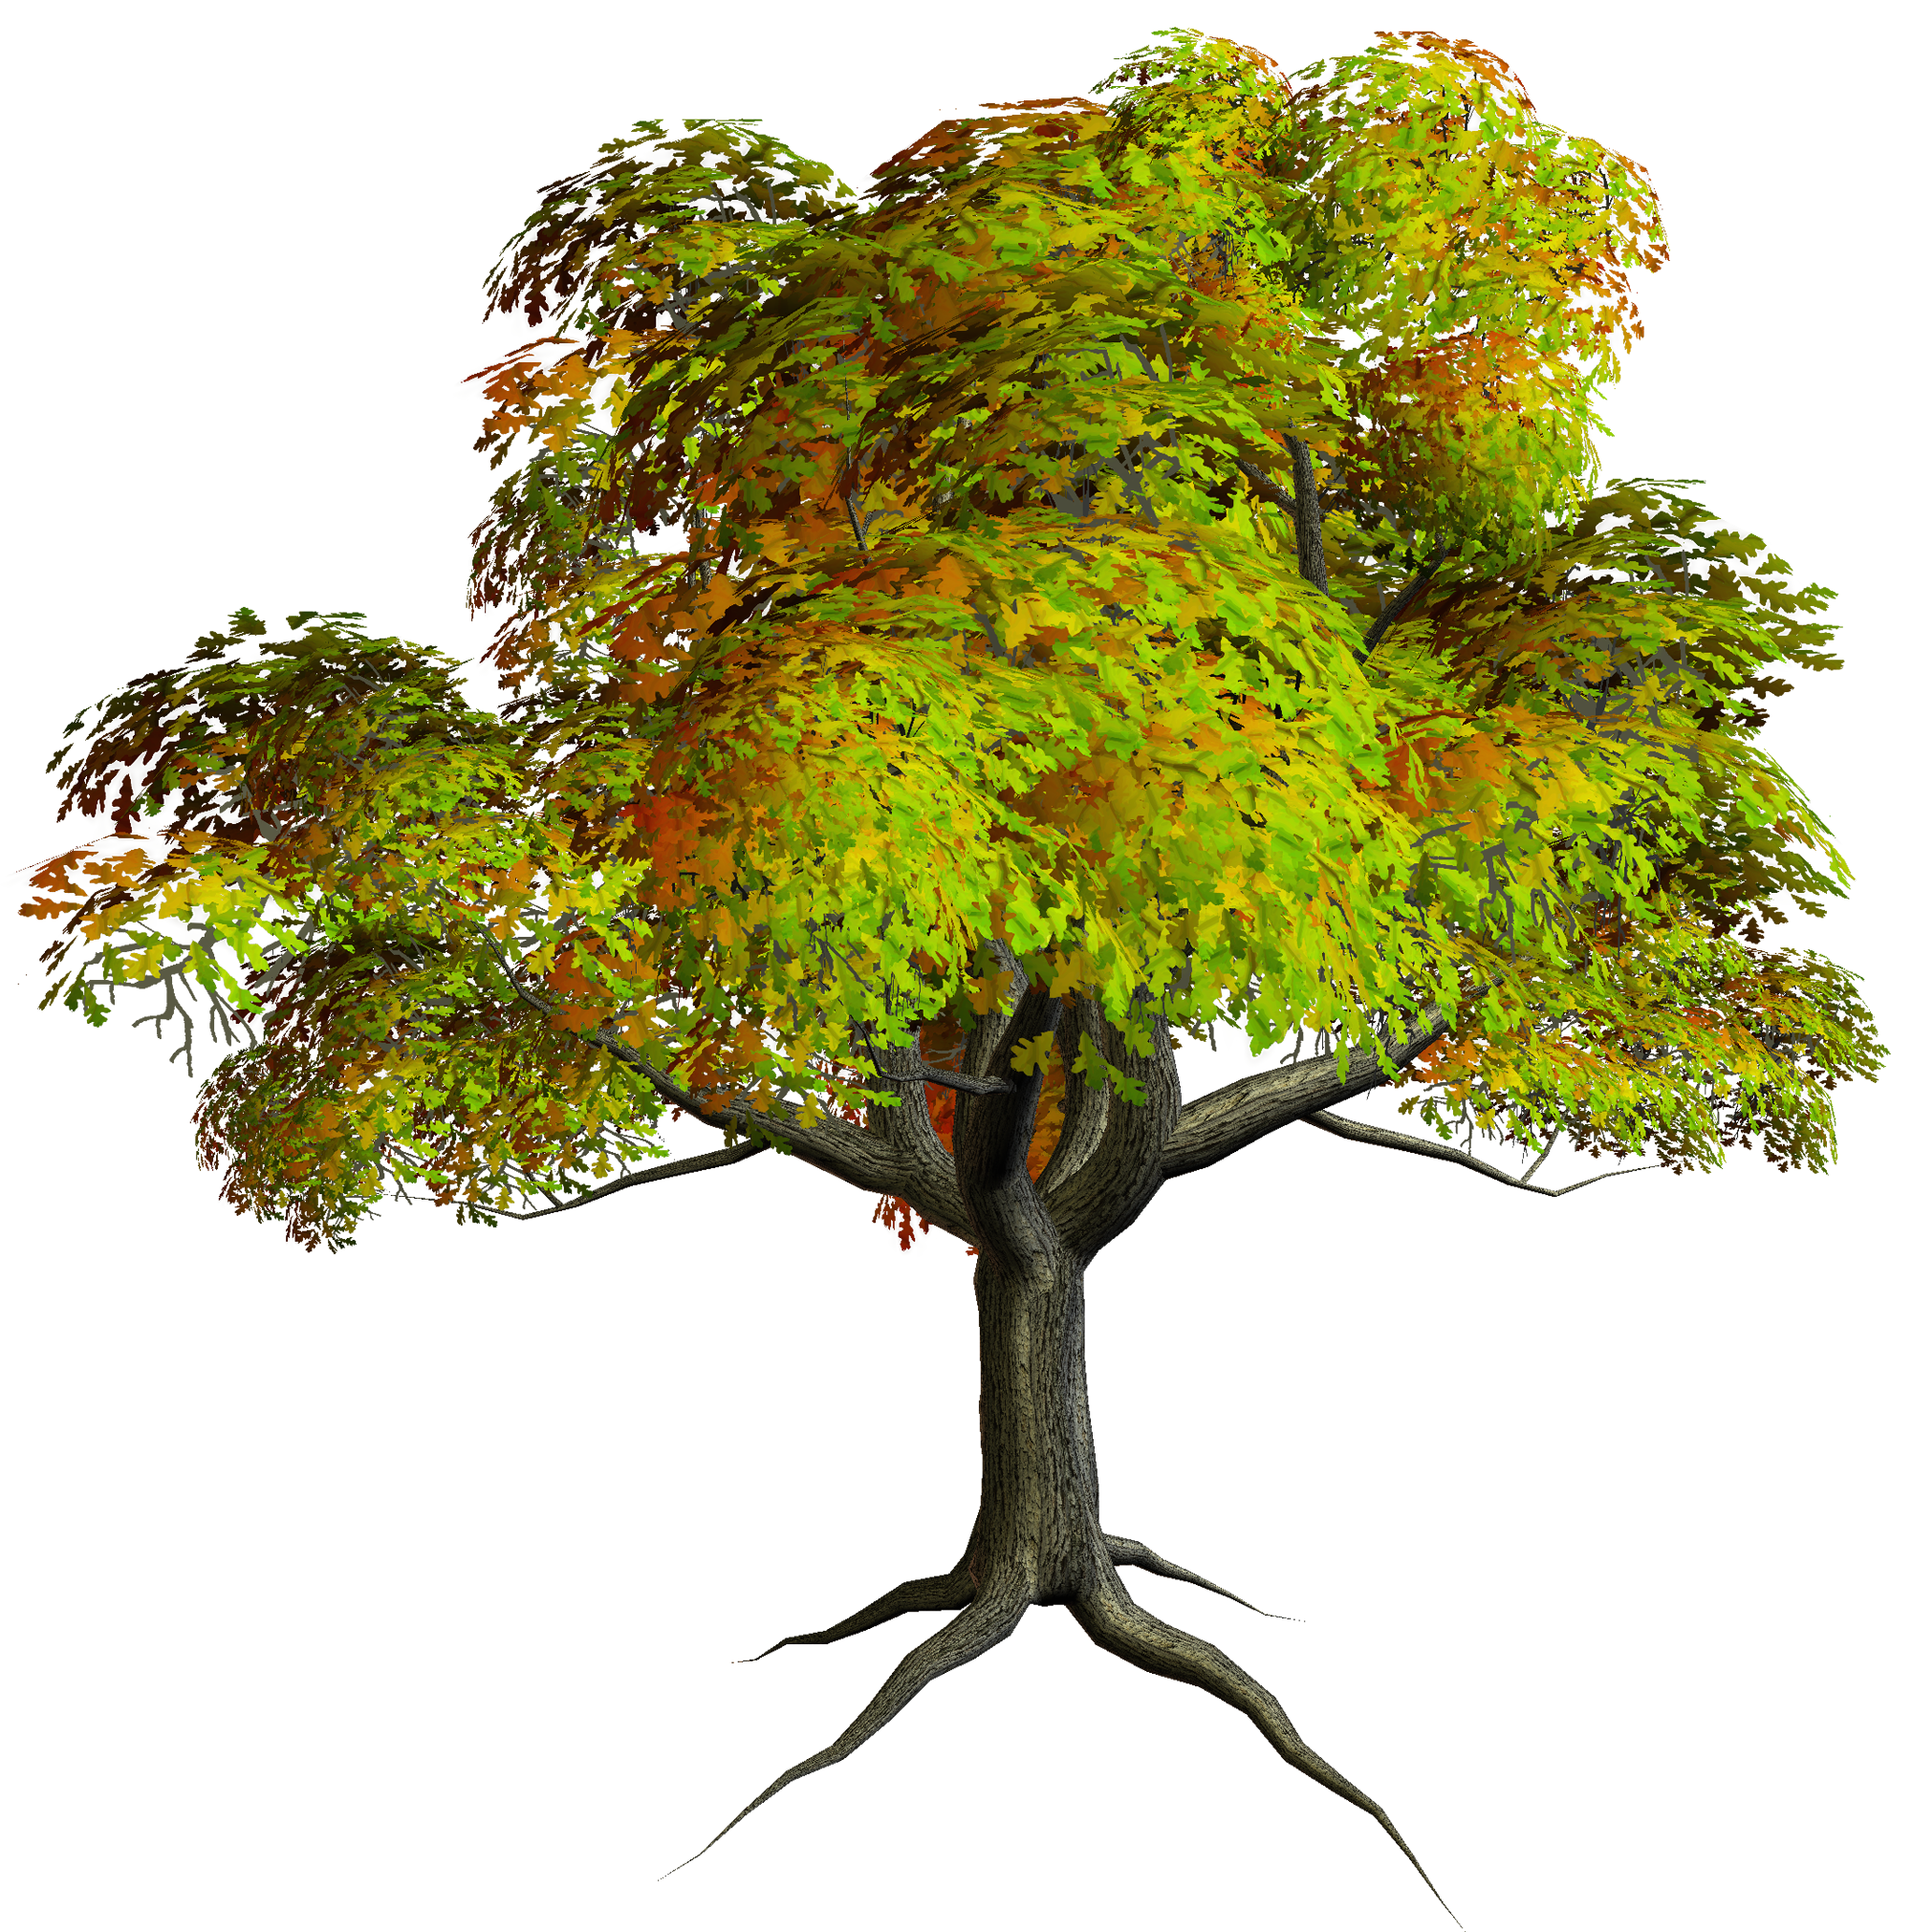 Tree Images Free Free Download Clip Art Free Clip Art On